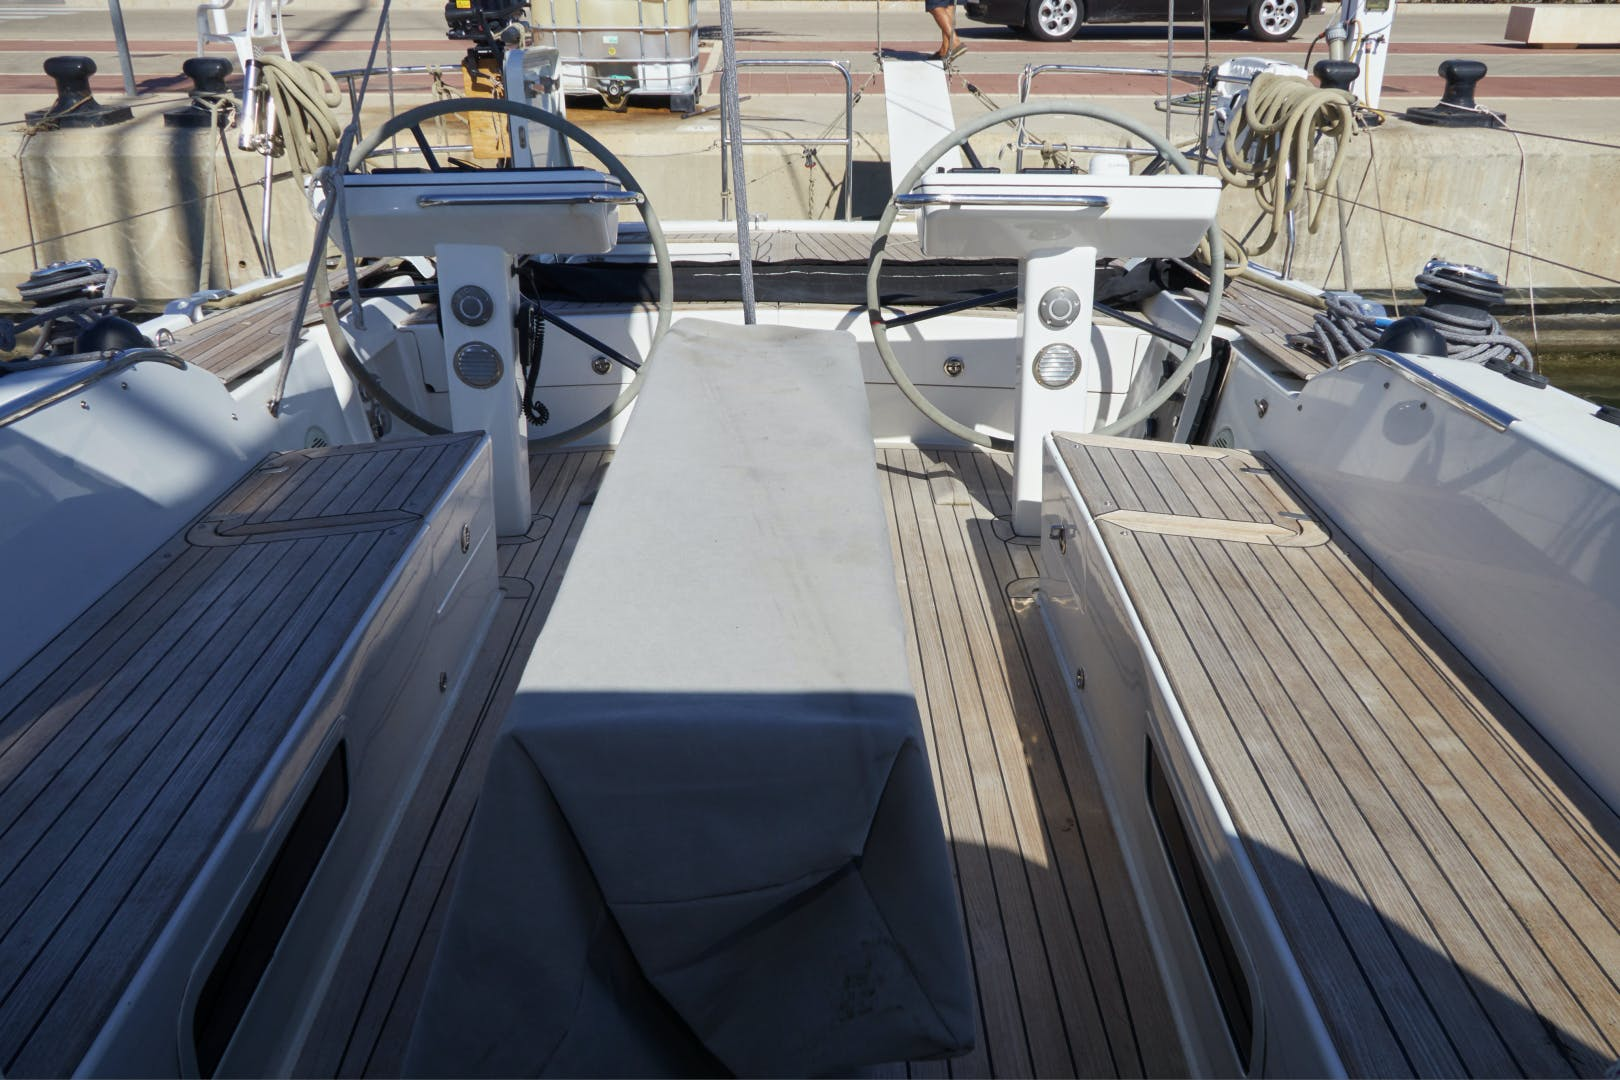 2010 Cantiere Pilot Sarl 65' Tripp 65 Spirit of Altair | Picture 5 of 16